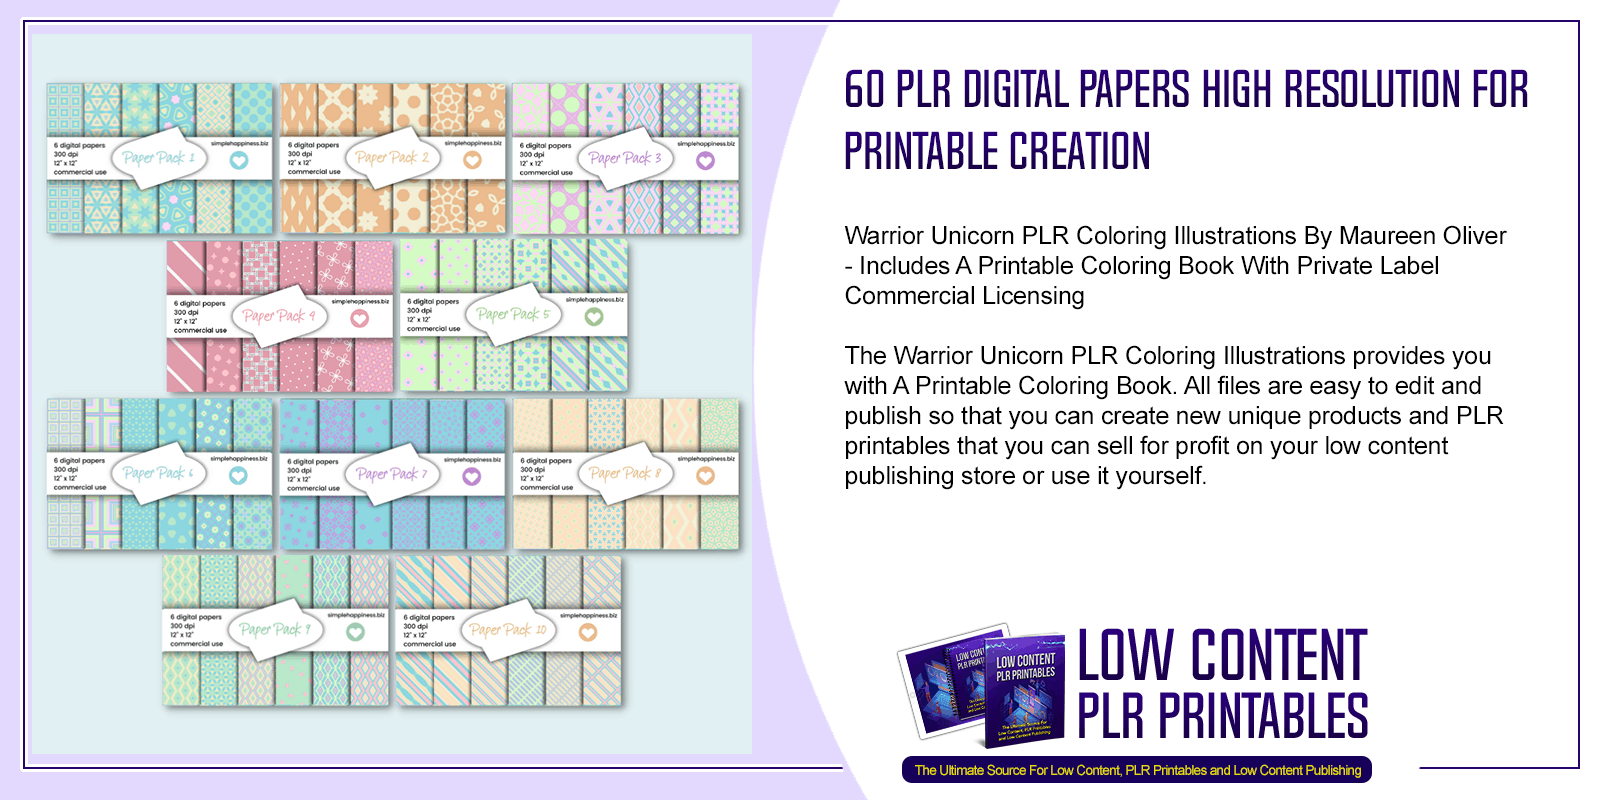 60 PLR Digital Papers High Resolution For Printable Creation